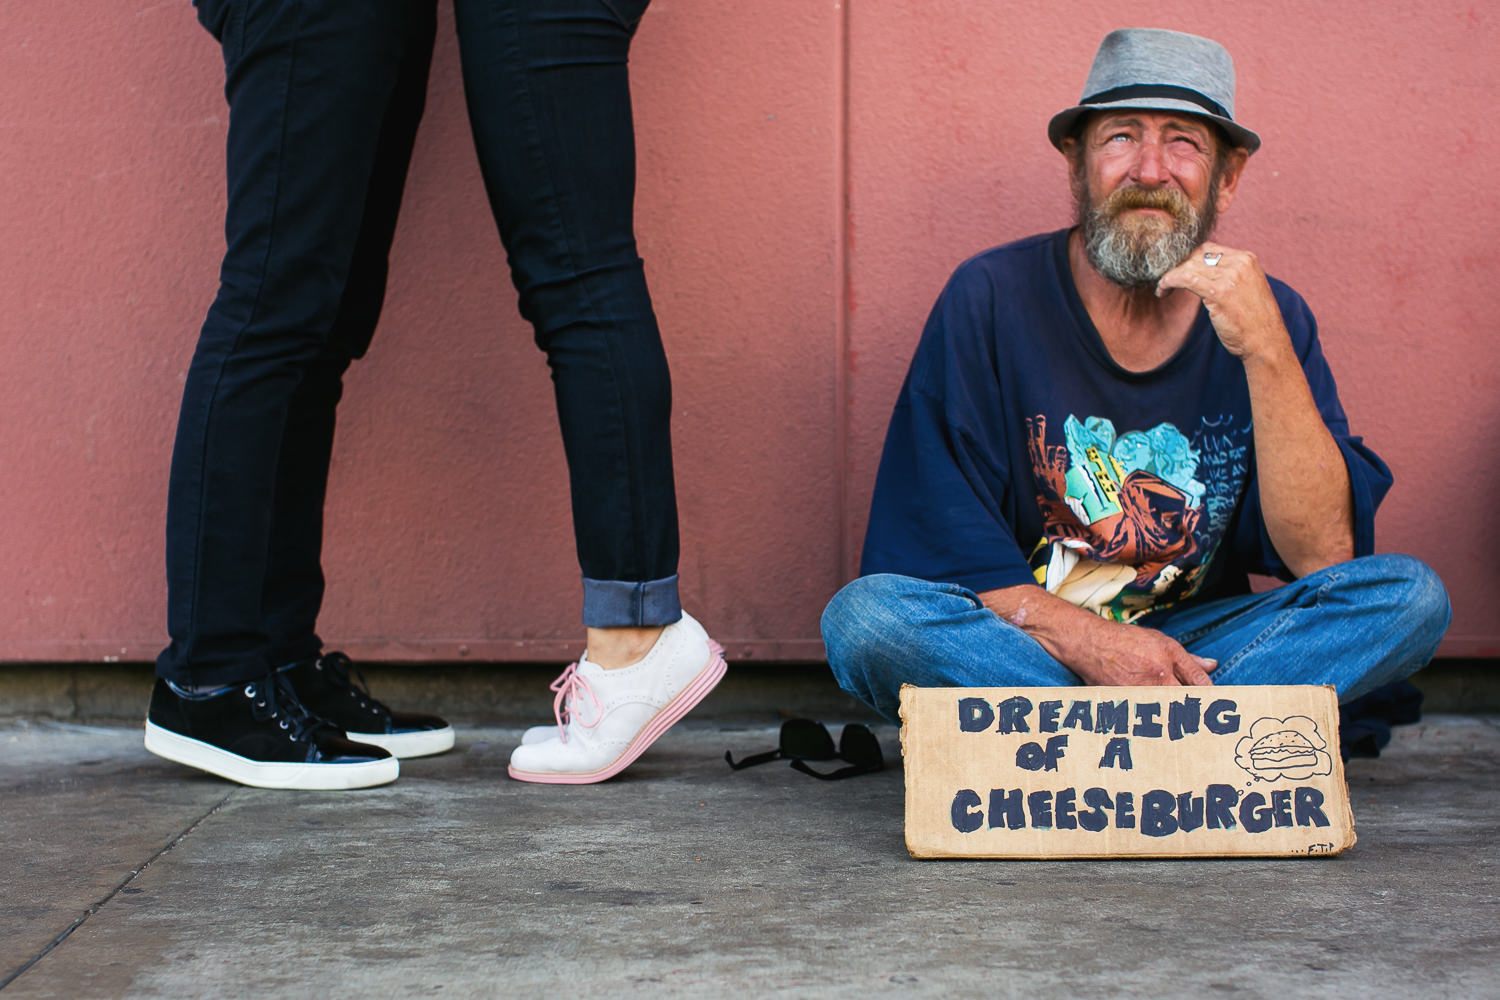 Venice Beach Engagement Photos - Kissing next to the homeless